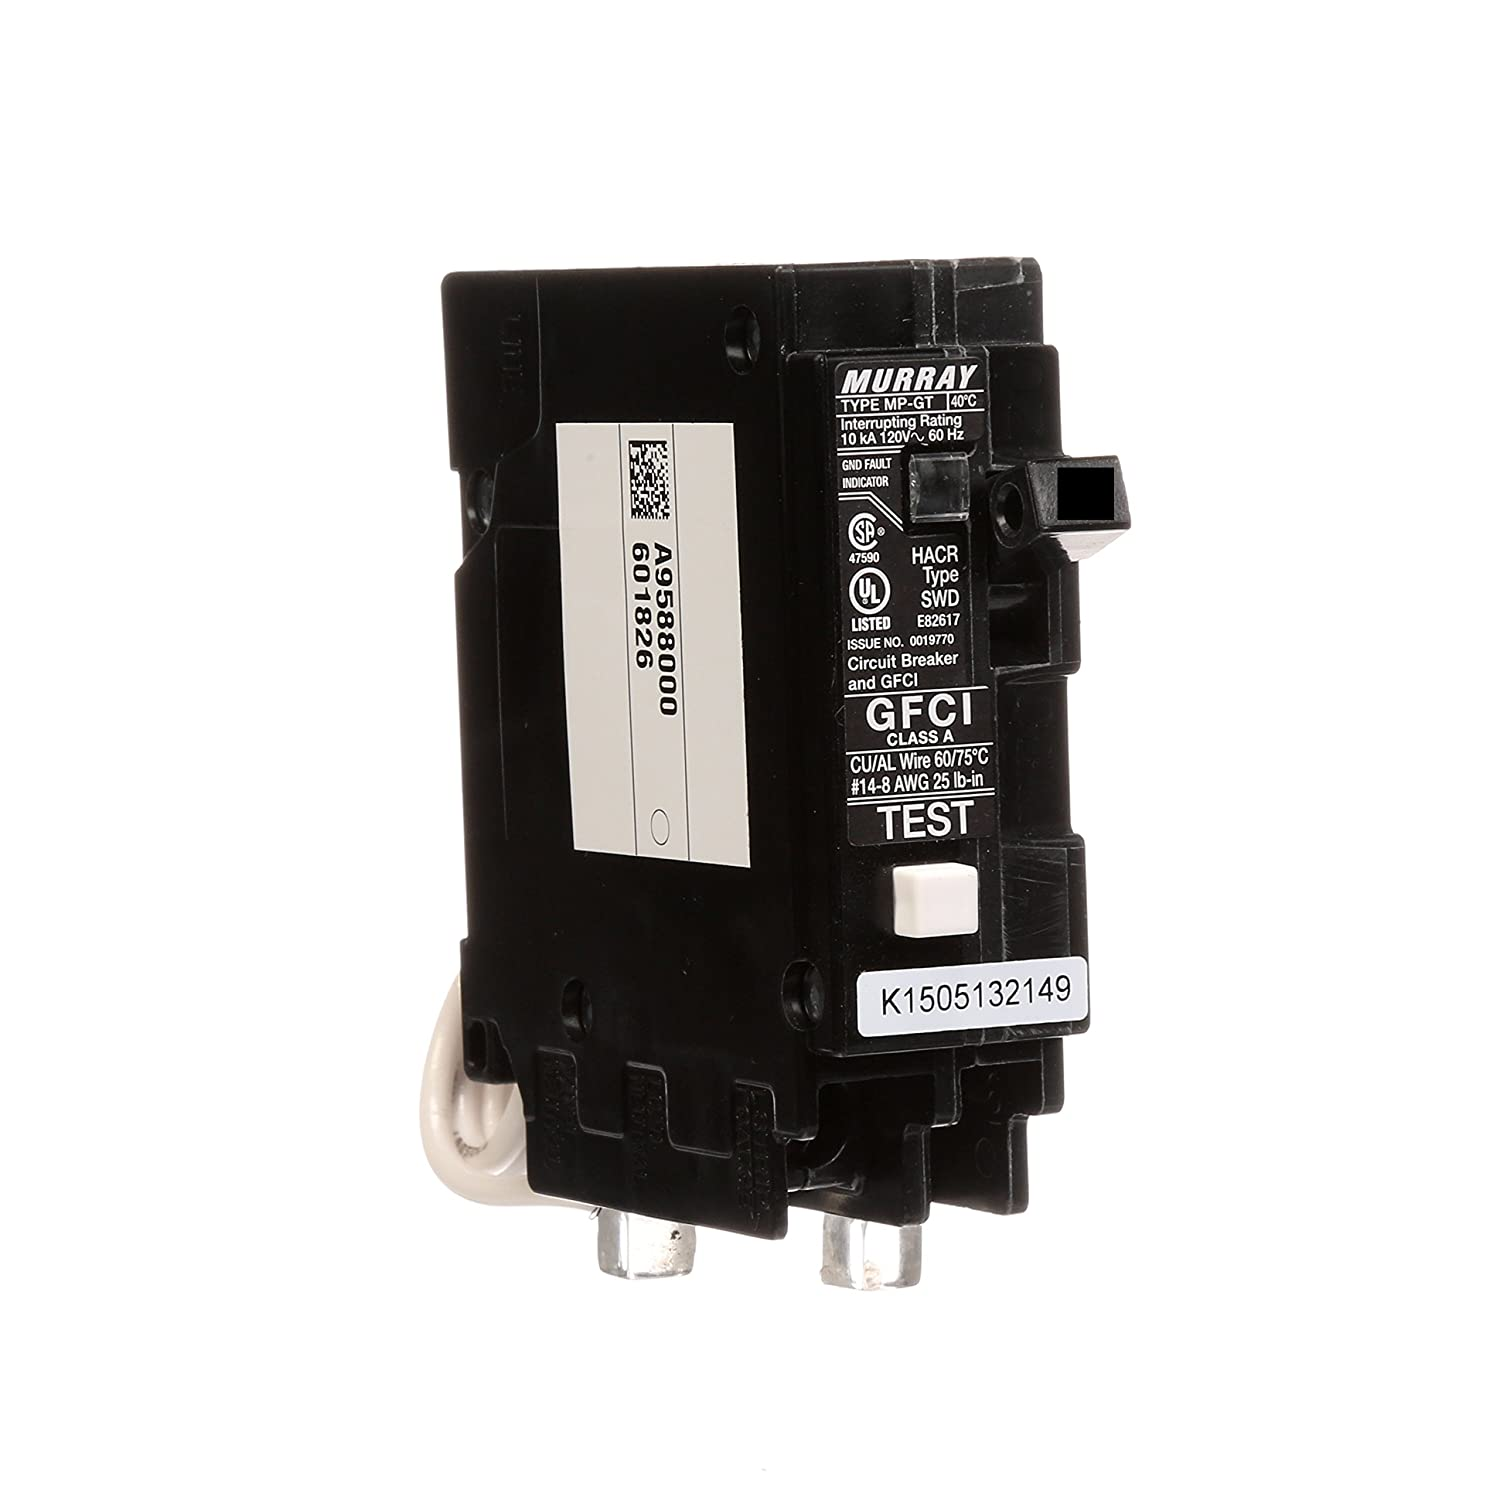 Gallery For Gt Gfci Circuit Breaker Wiring Diagram Online A Schematic Back